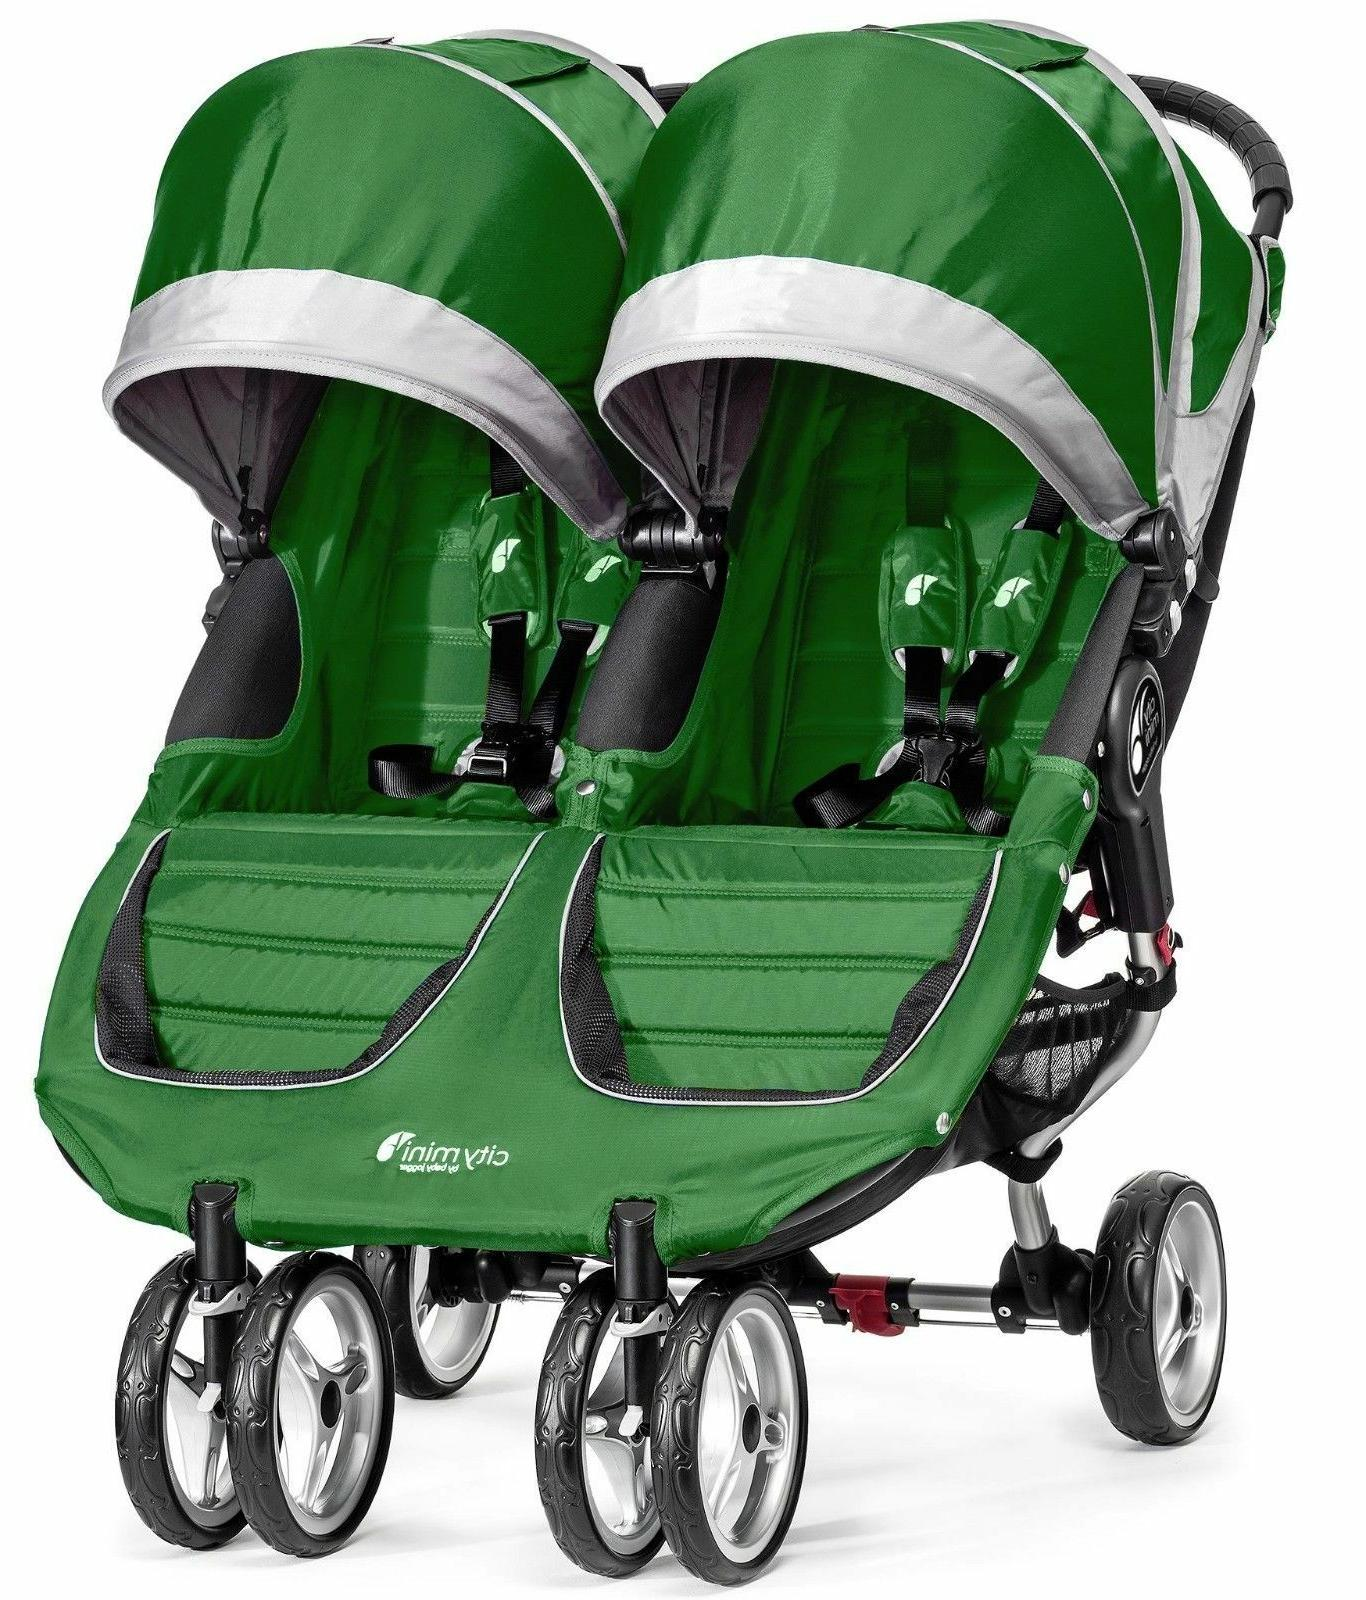 Baby Jogger Double Child Stroller Evergreen